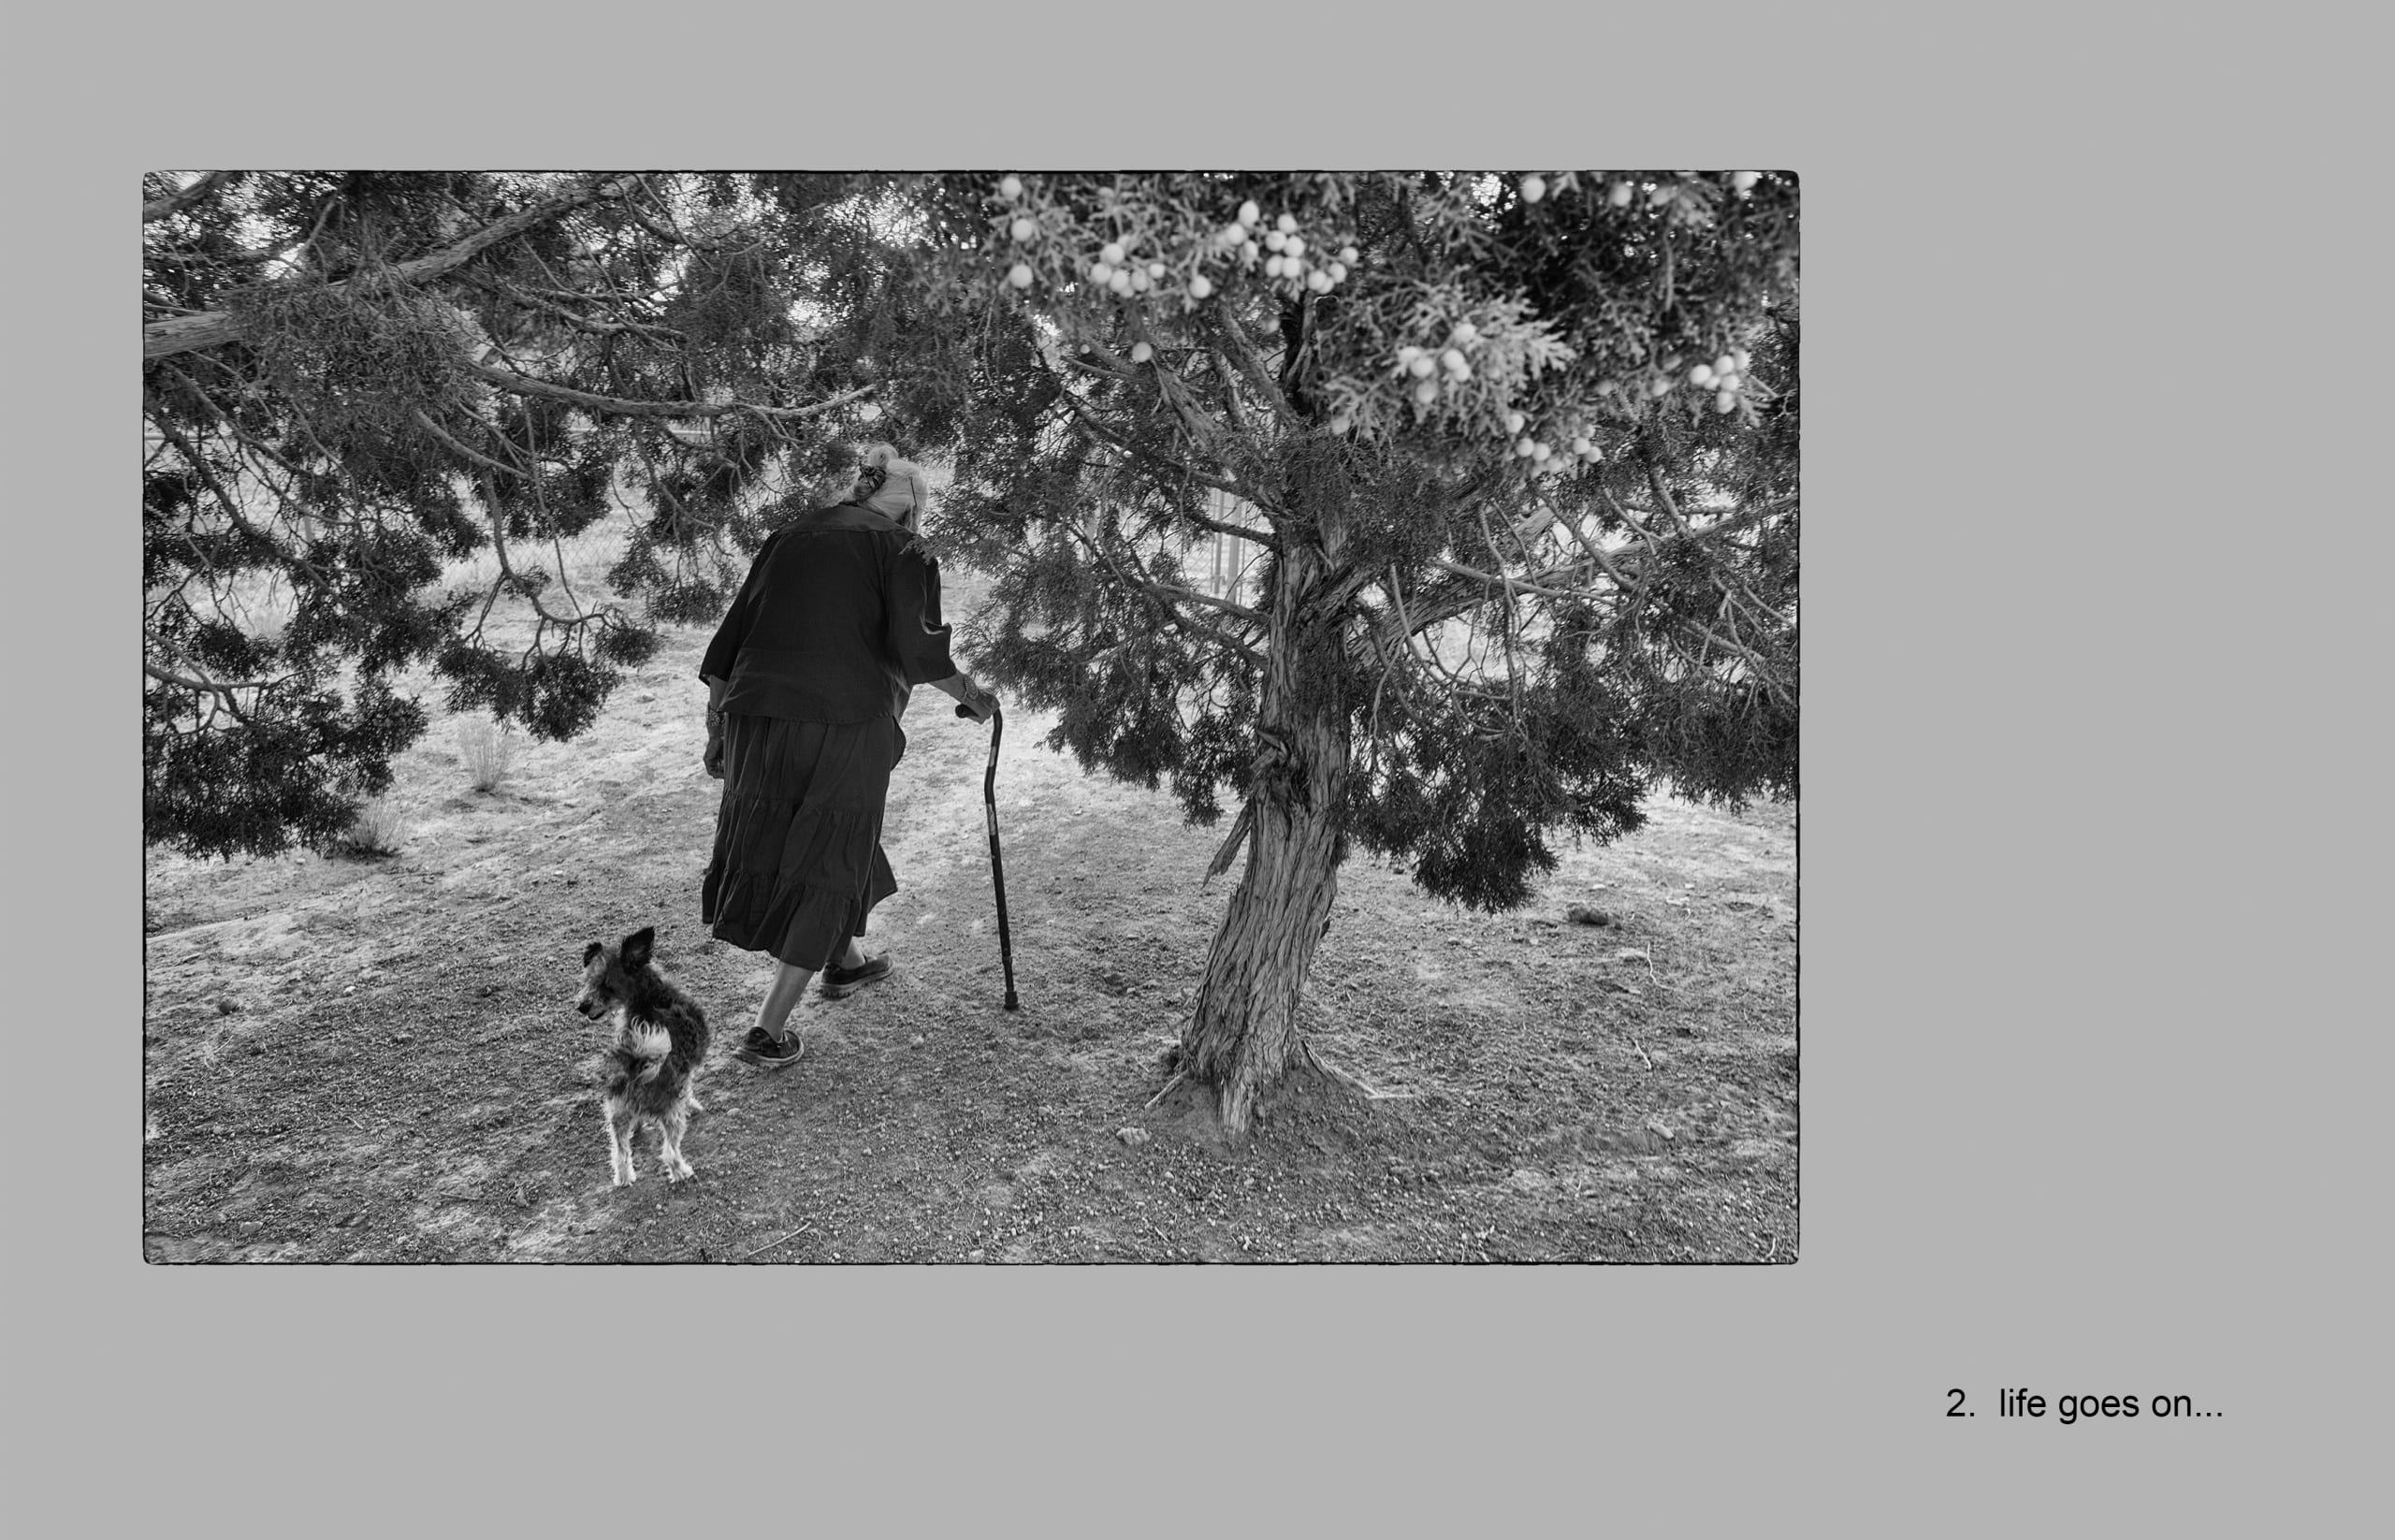 Black-and-white photo showing a matriarch from the Big Mountain region of the Navajo nation; she wears a skirt and walks with the aid of a cane as she moves away from the camera and passes under a tree; she is followed by a small dog who stops to look back for a moment